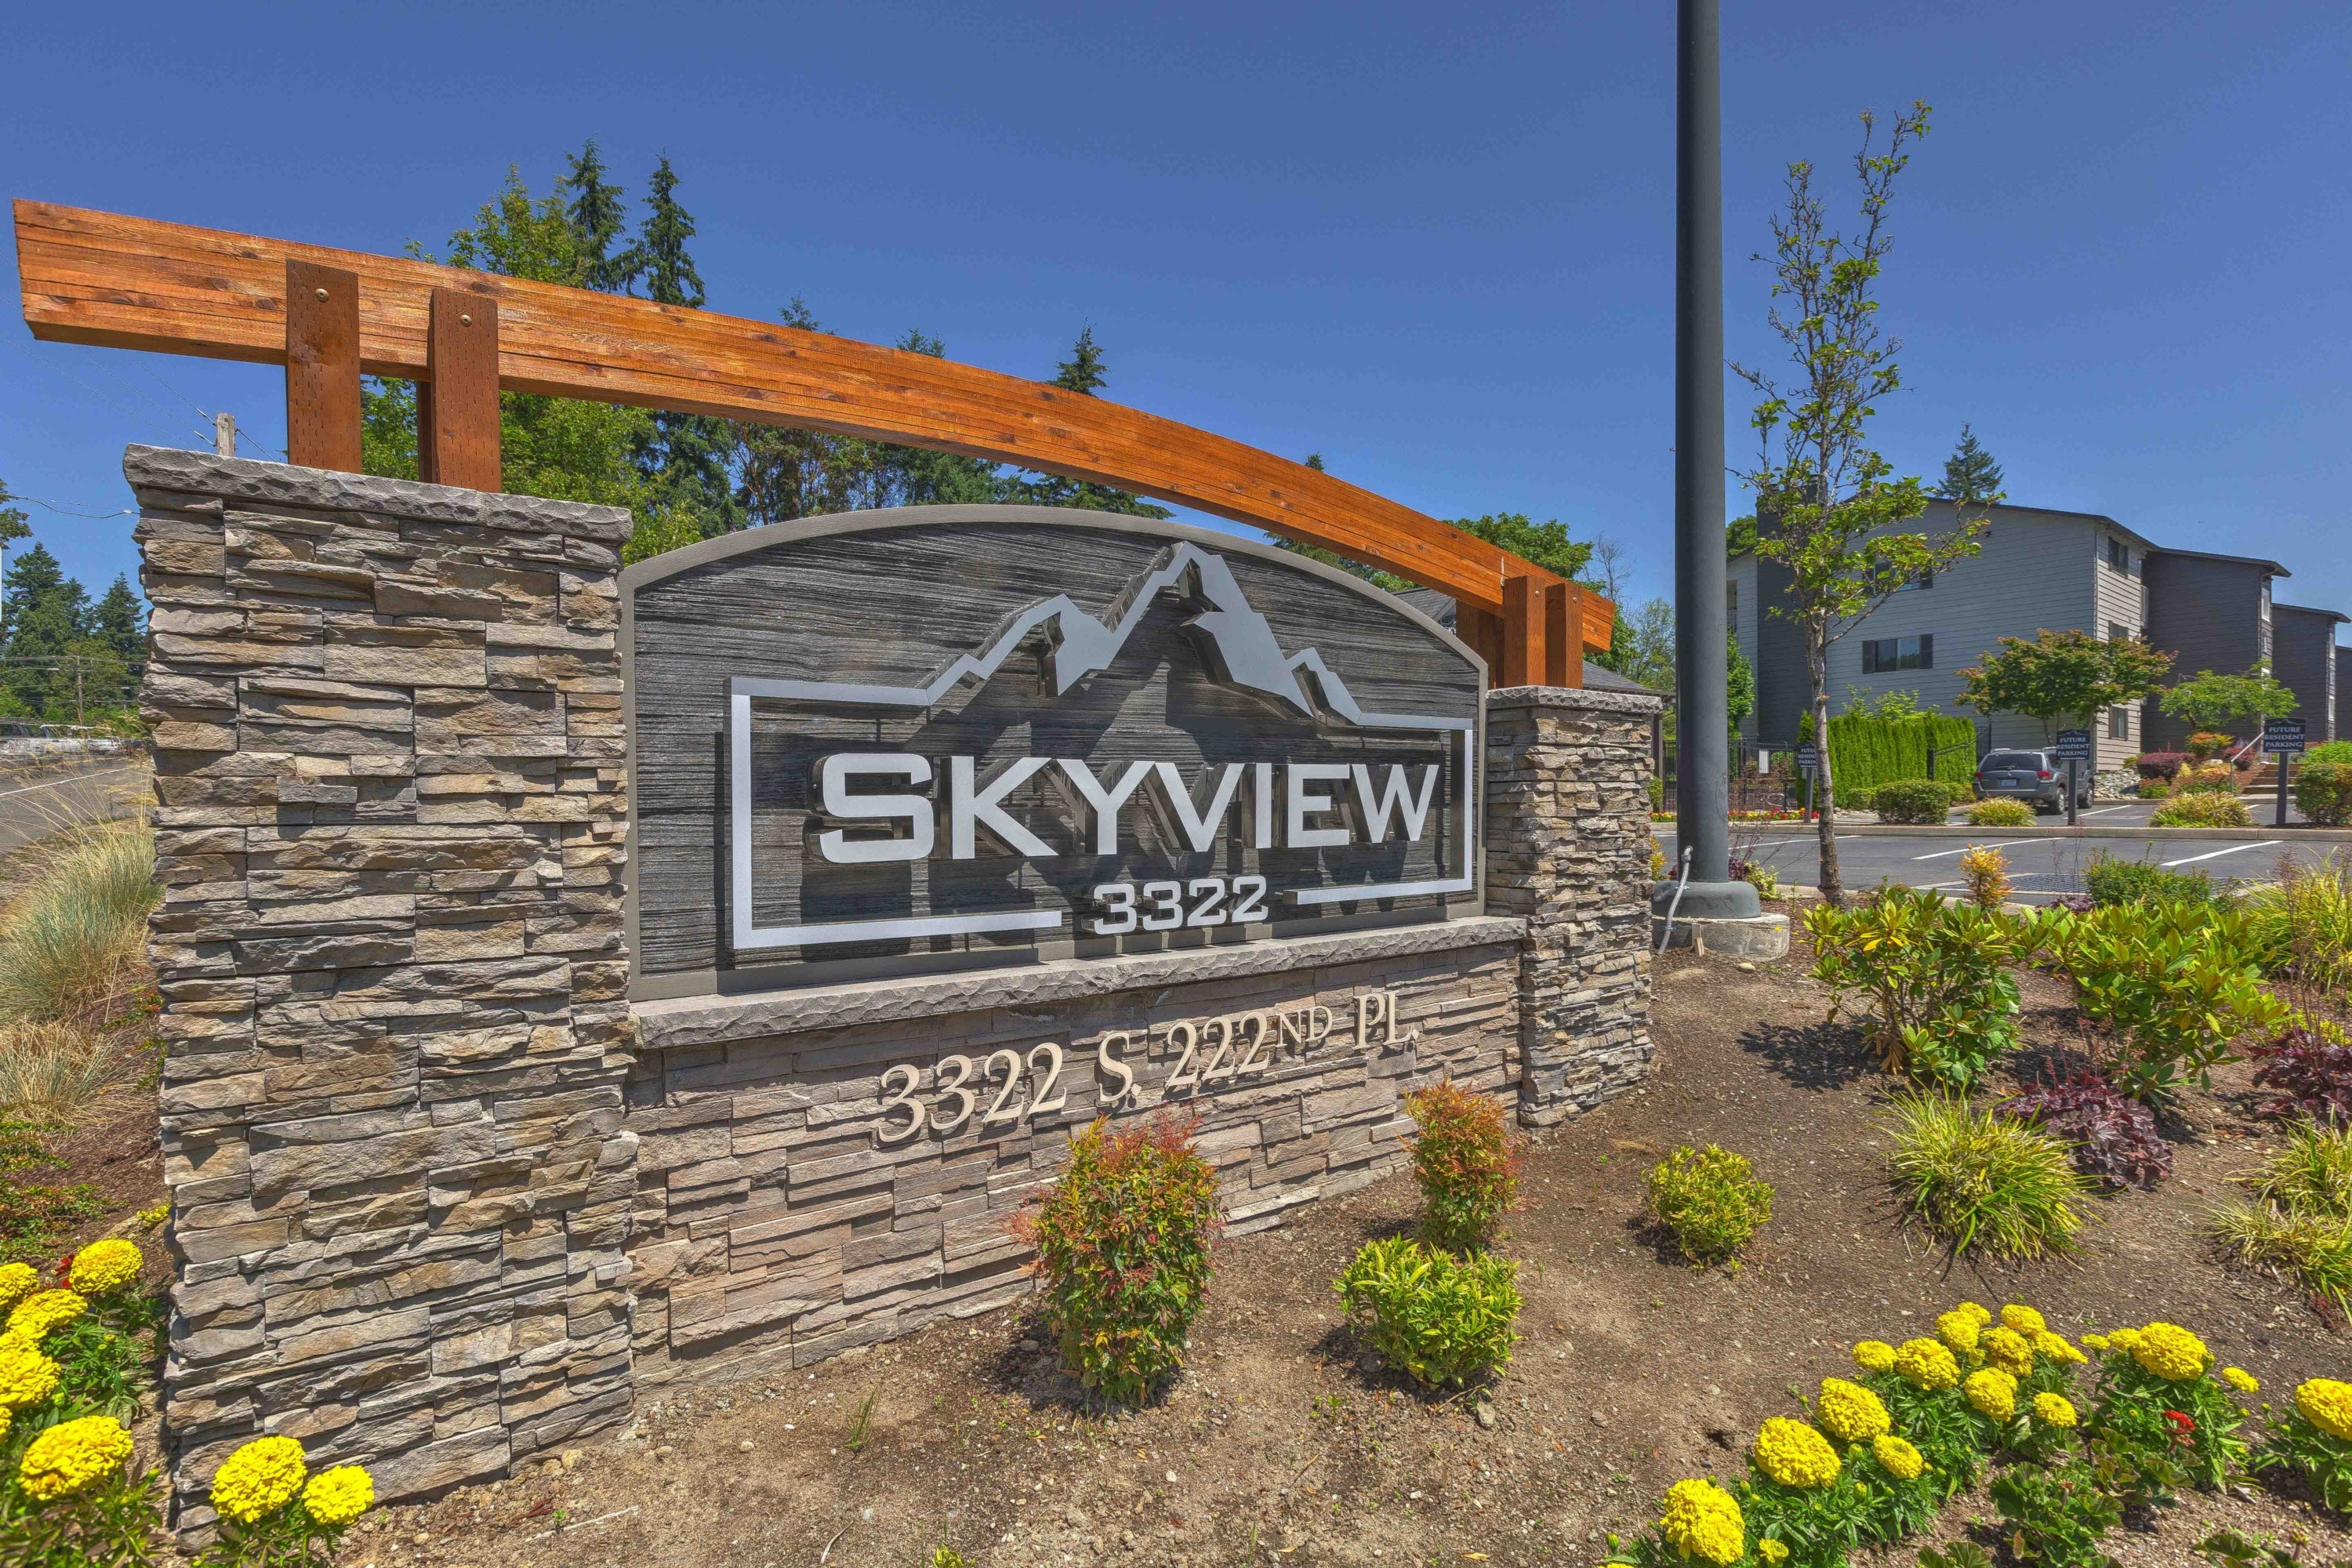 Kent Washington Apartments - Skyview 3322 Apartments Monument Sign